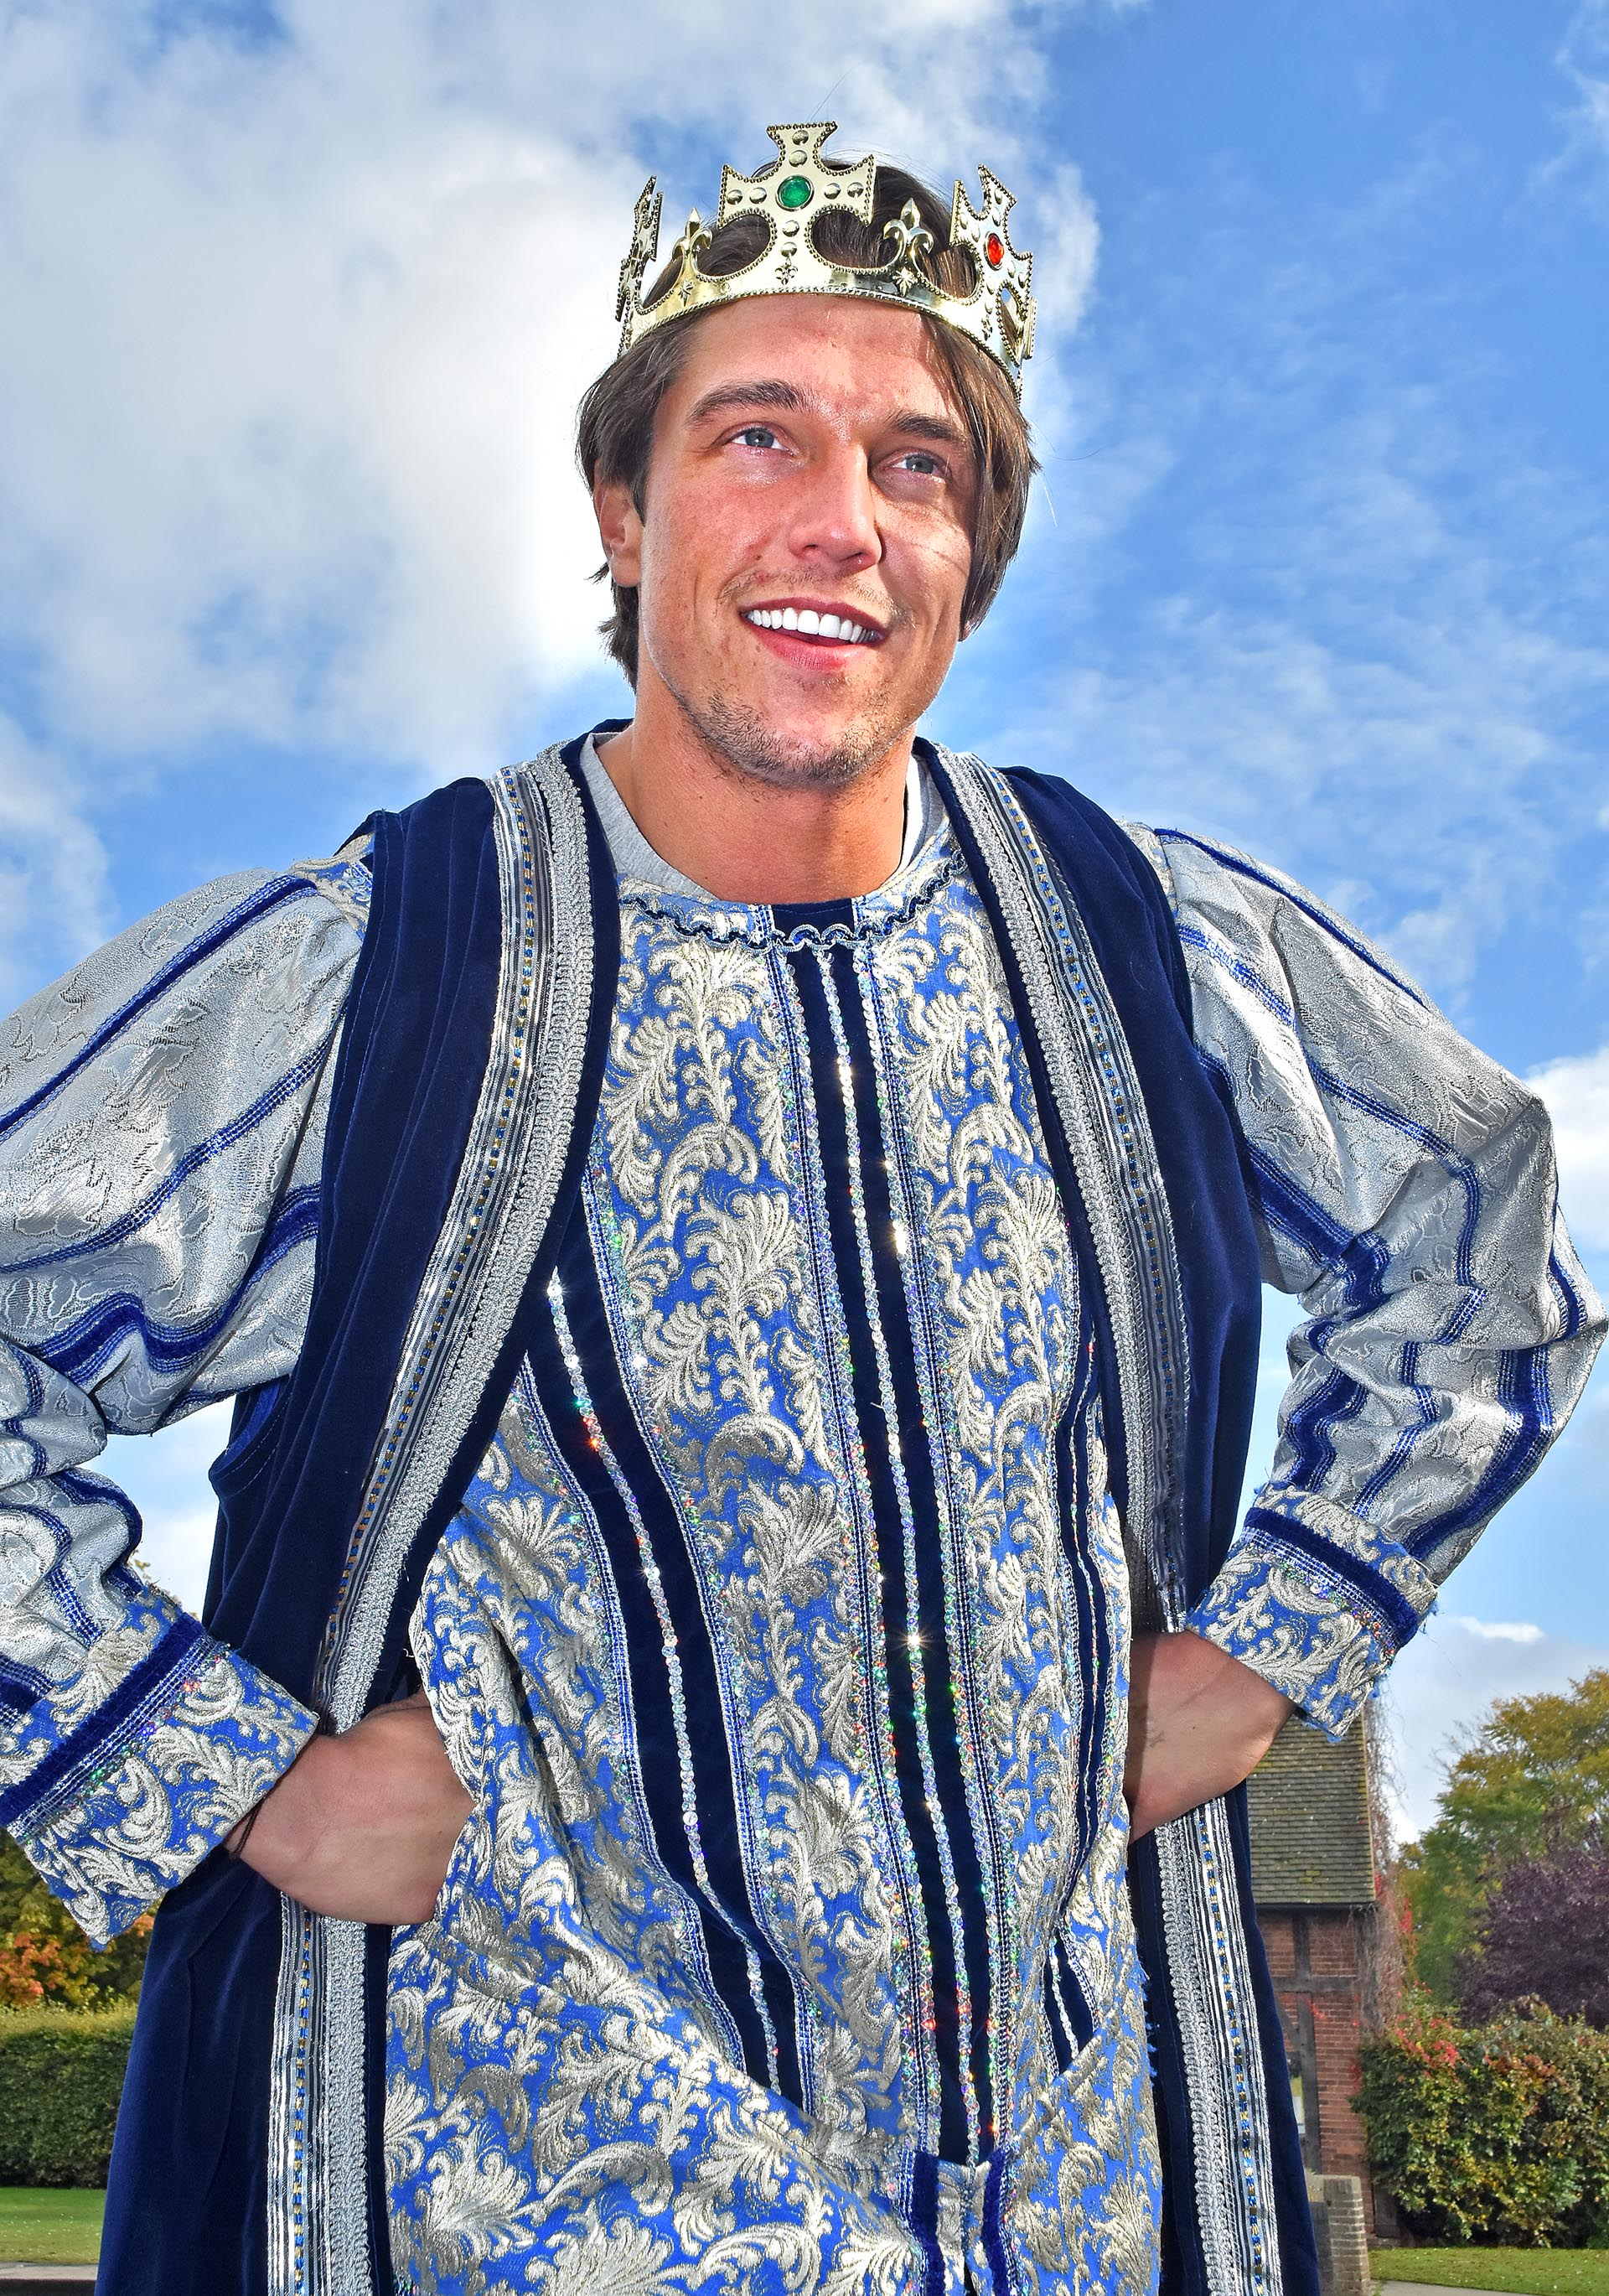 Lewis Bloor as King Willy the Umpteenth in Jack And The Beanstalk. Picture: Favid Harrison